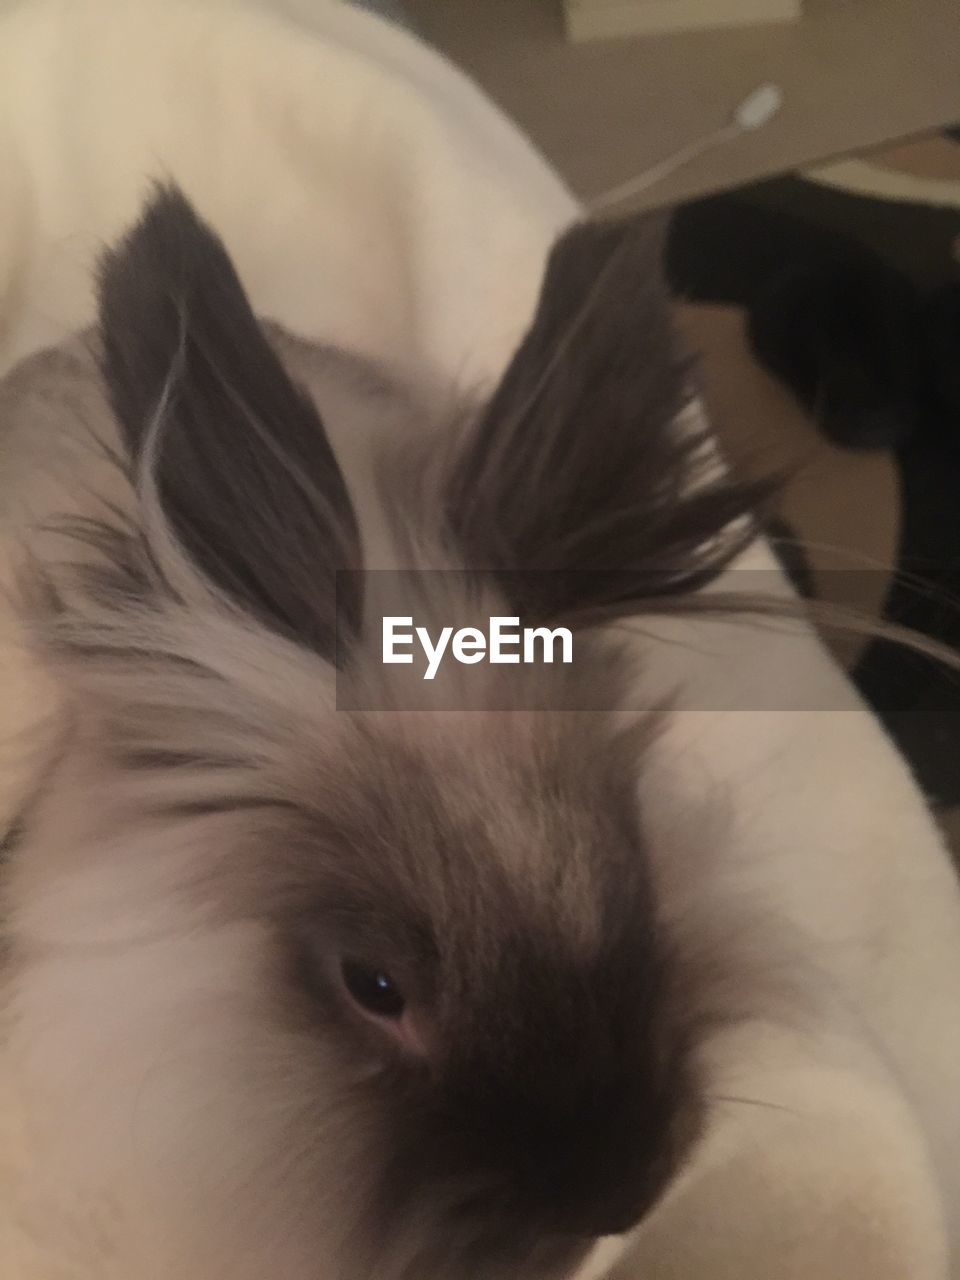 mammal, one animal, animal themes, animal, domestic, pets, domestic animals, vertebrate, close-up, indoors, animal body part, no people, animal hair, animal head, dog, canine, hair, home interior, relaxation, portrait, whisker, small